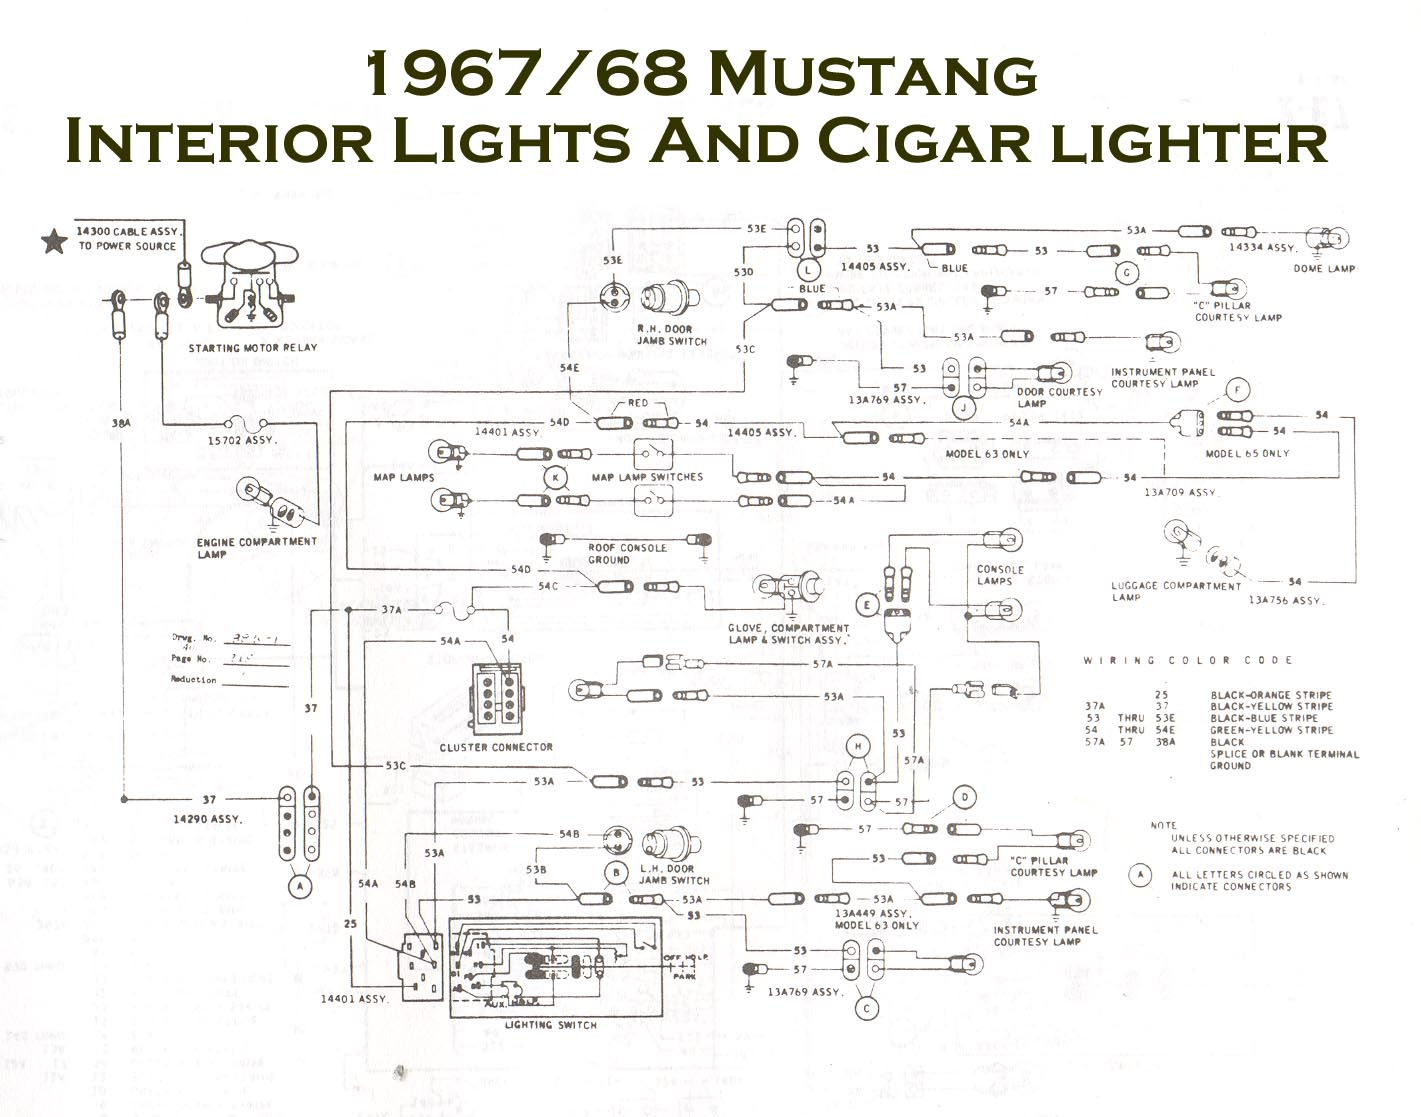 Headlight Wiring Diagram Ford Mustang Starting Know About 1969 Diagrams Vintage Rh Midlife66 Com 2000